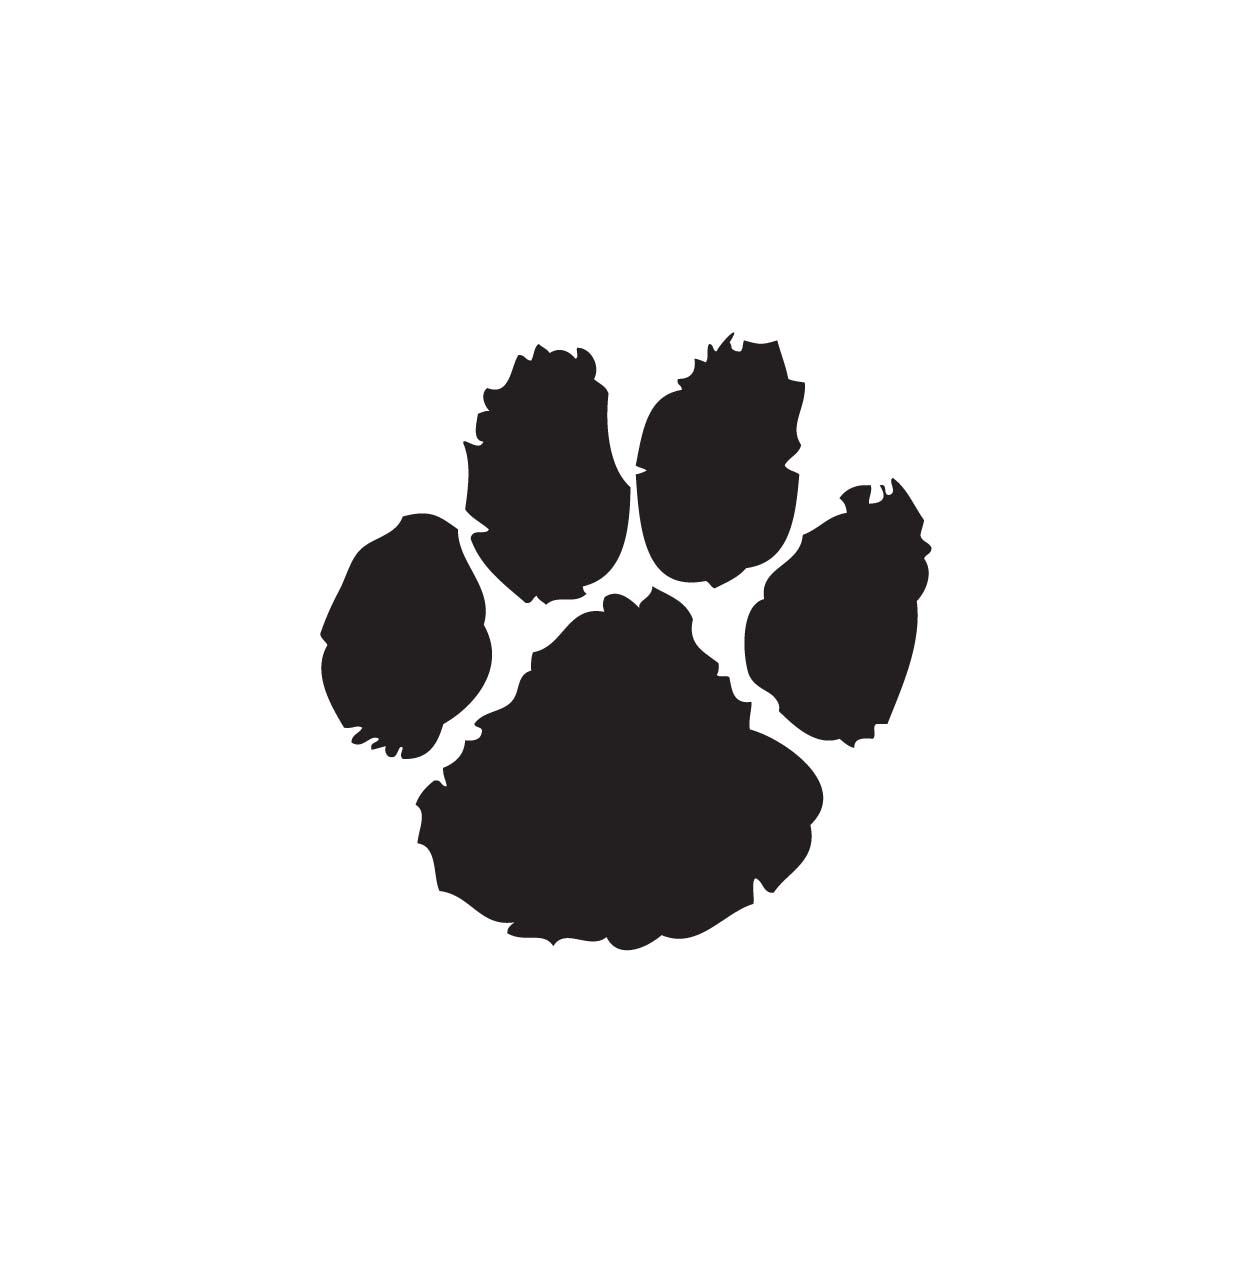 dog paw print clipart and illustration 533 dog paw print.